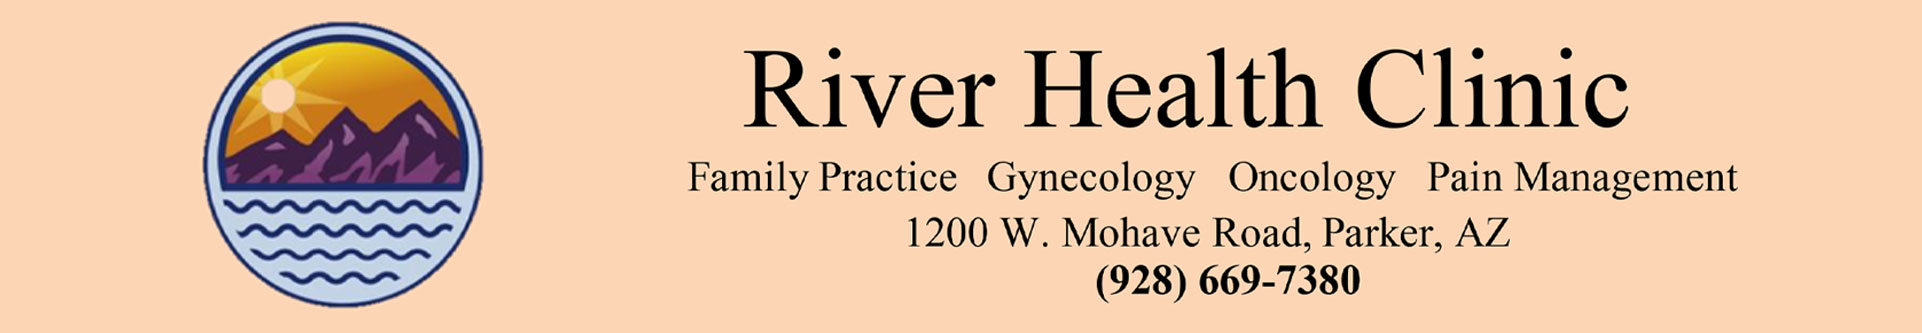 River Health Clinic   Family Practice - Gynecology - Oncology Pain Management   1200 W. Mohave Road, Parker, AZ (928) 669-7380